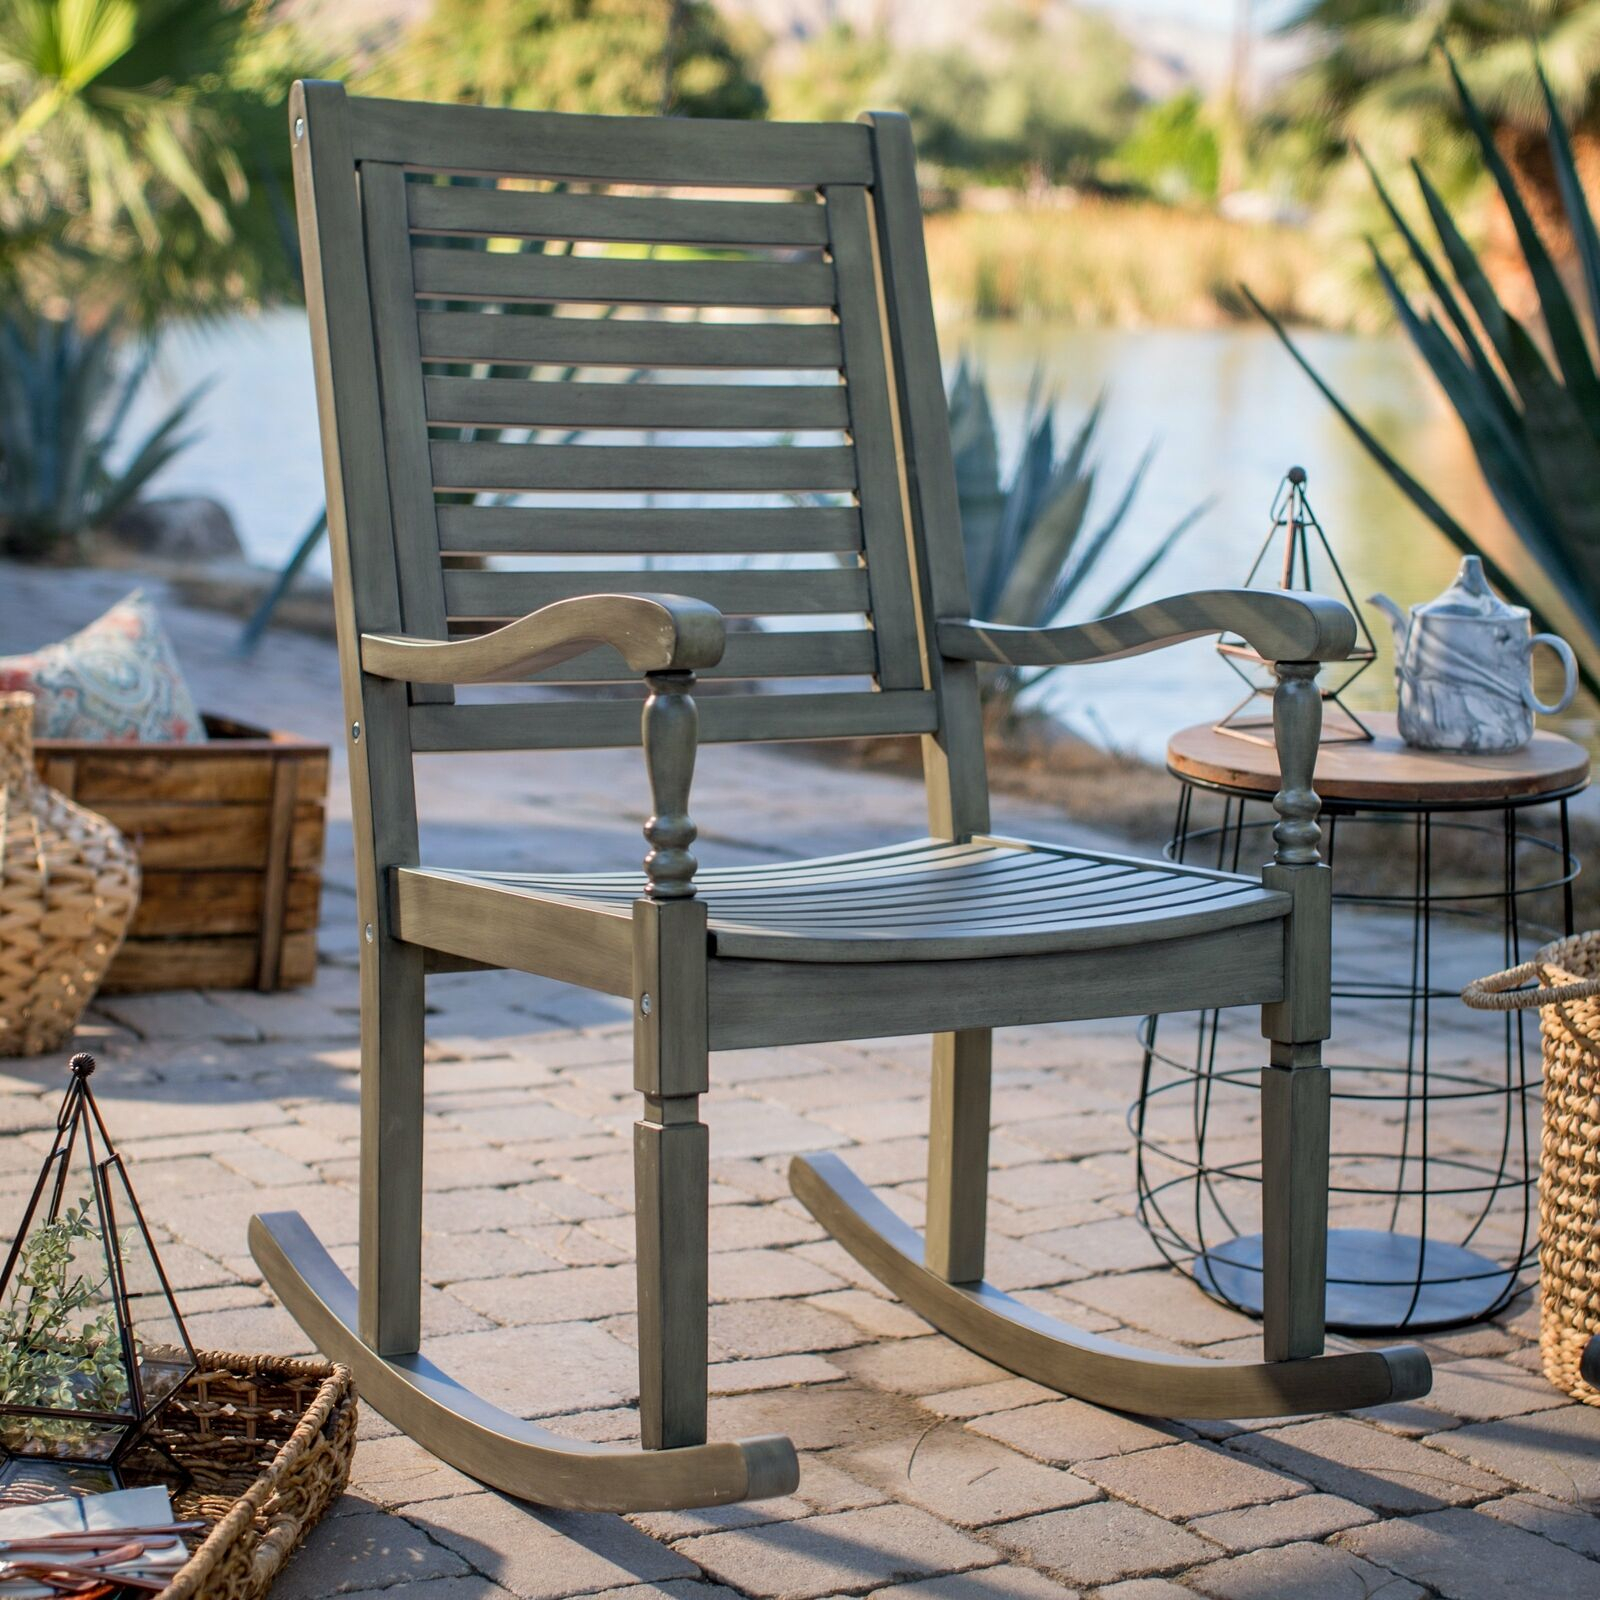 Indoor Outdoor Wood Porch Rocking Chair Vintage Gray Patio Rocker Seat  Furniture Intended For Liverpool Classic Style Rocking Chairs In Antique Oak Finish (#14 of 20)